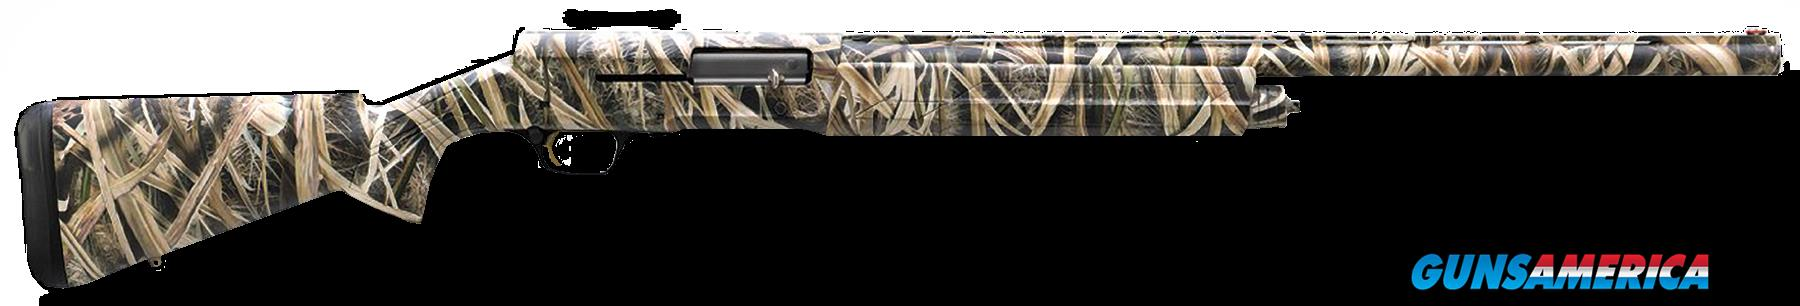 "Browning 011818300 A5 Stalker Semi-Automatic 12 Gauge 30"" 3"" Mossy Oak Shadow Grass Blades Synthetic  Guns > Shotguns > Browning Shotguns > Autoloaders > Hunting"